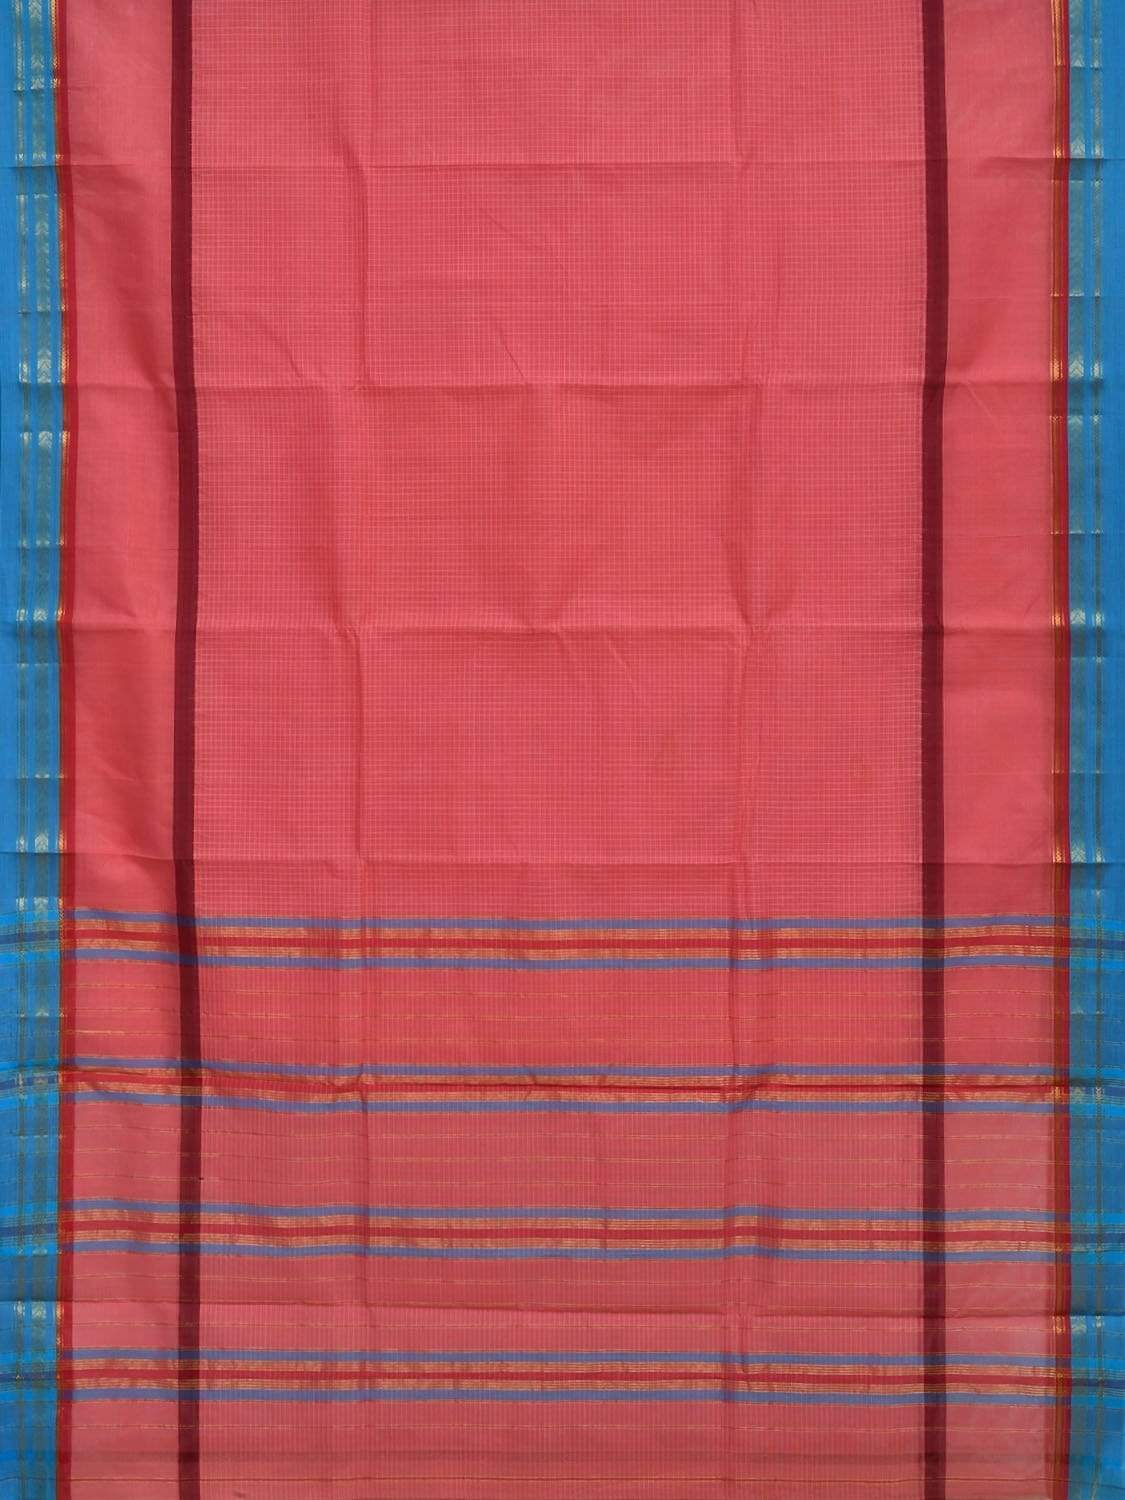 Baby Pink Narayanpet Cotton Handloom Saree with Checks and One Side Big Border Design No Blouse np0256